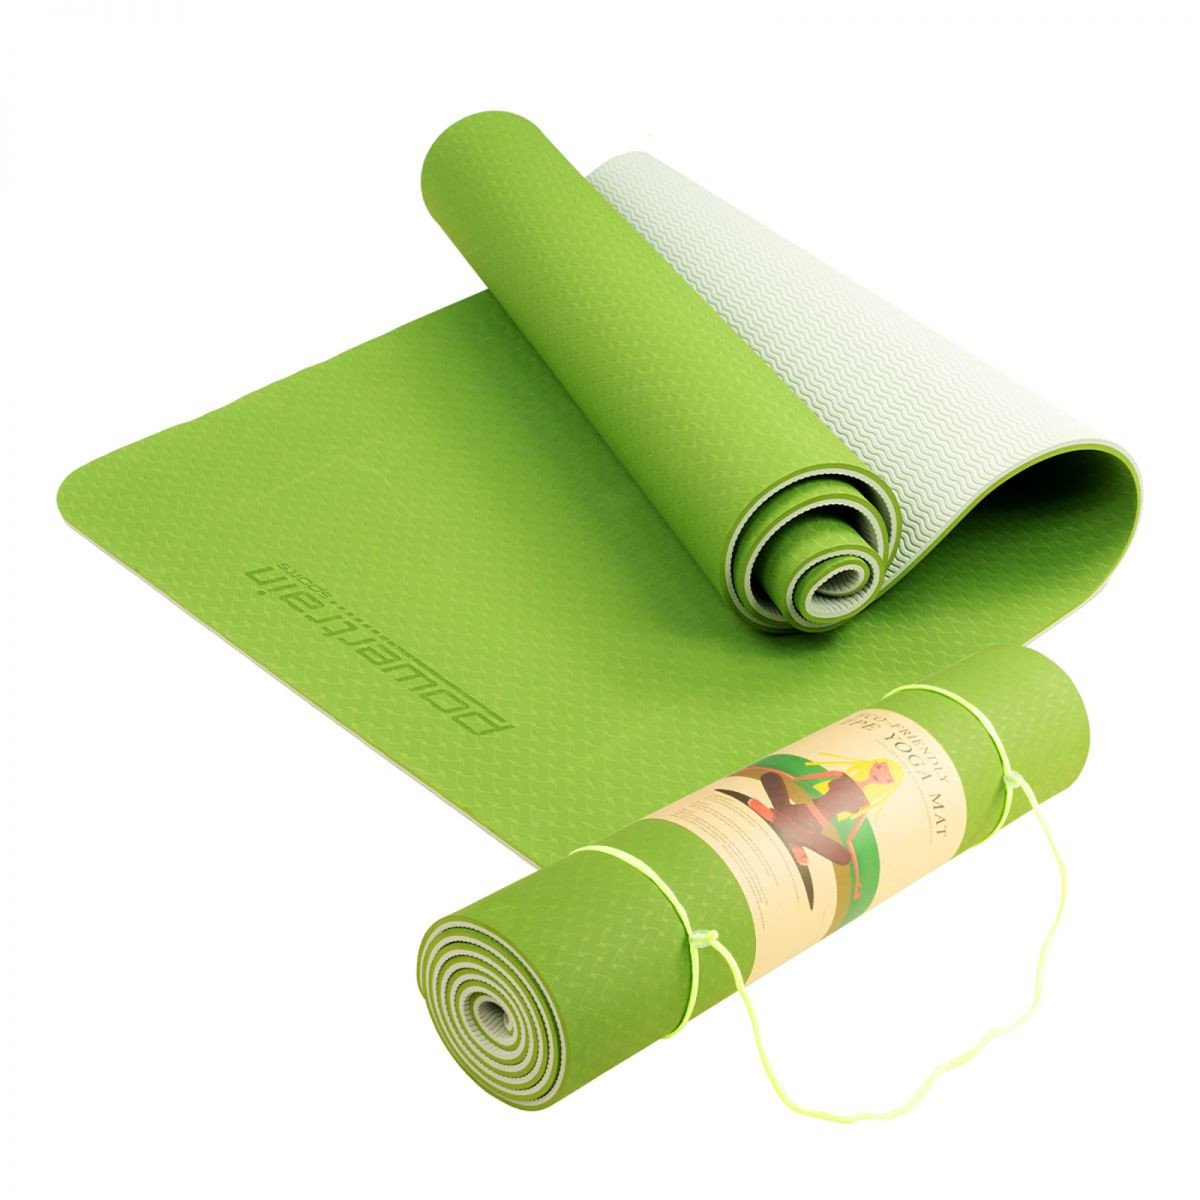 Powertrain Eco Friendly TPE Yoga Exercise Pilates Mat - Green